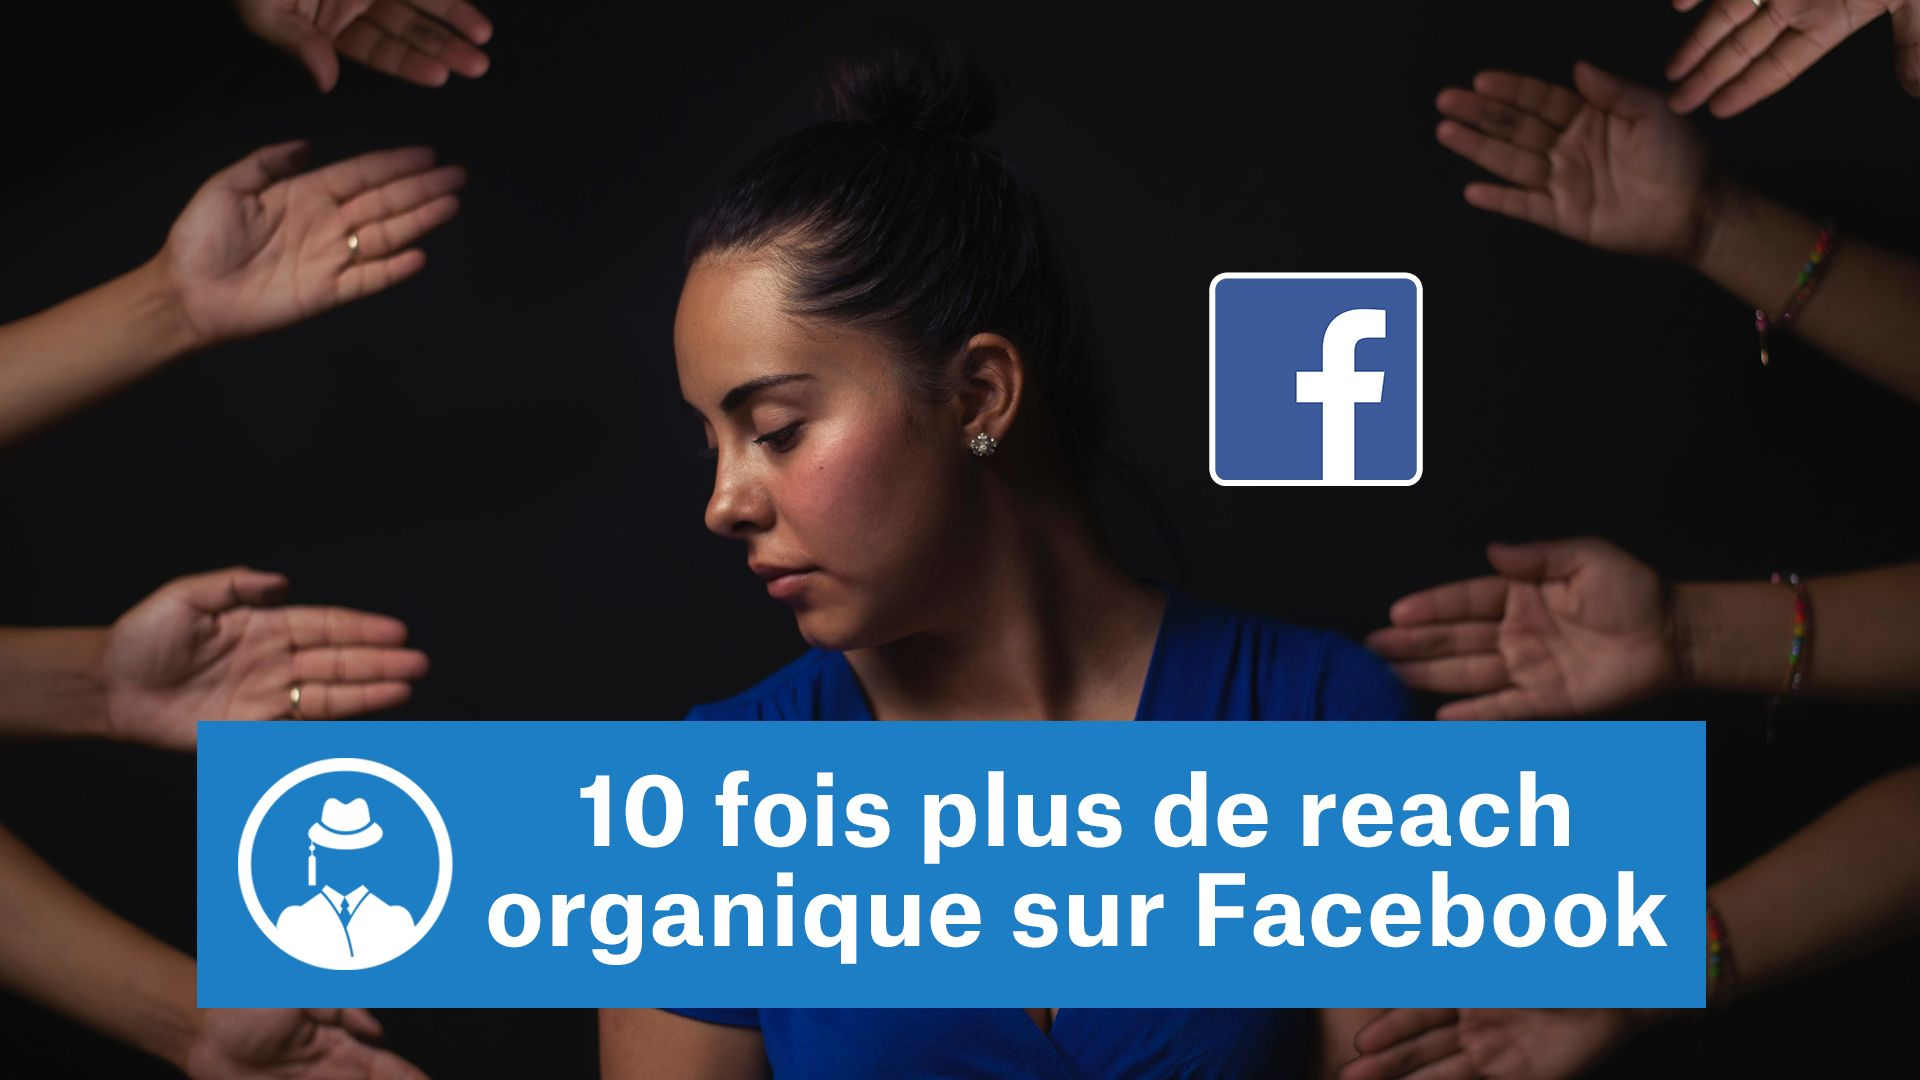 10 fois plus de reach organique sur Facebook #GrowthHacking #WebMarketing #FormationGrowthHacking #CentreDeFormationFrance #TunnelAARRR #AARRR #SocialMedia #CommunityManagement #SEO #MarketingDigital #SiteWeb #Facebook